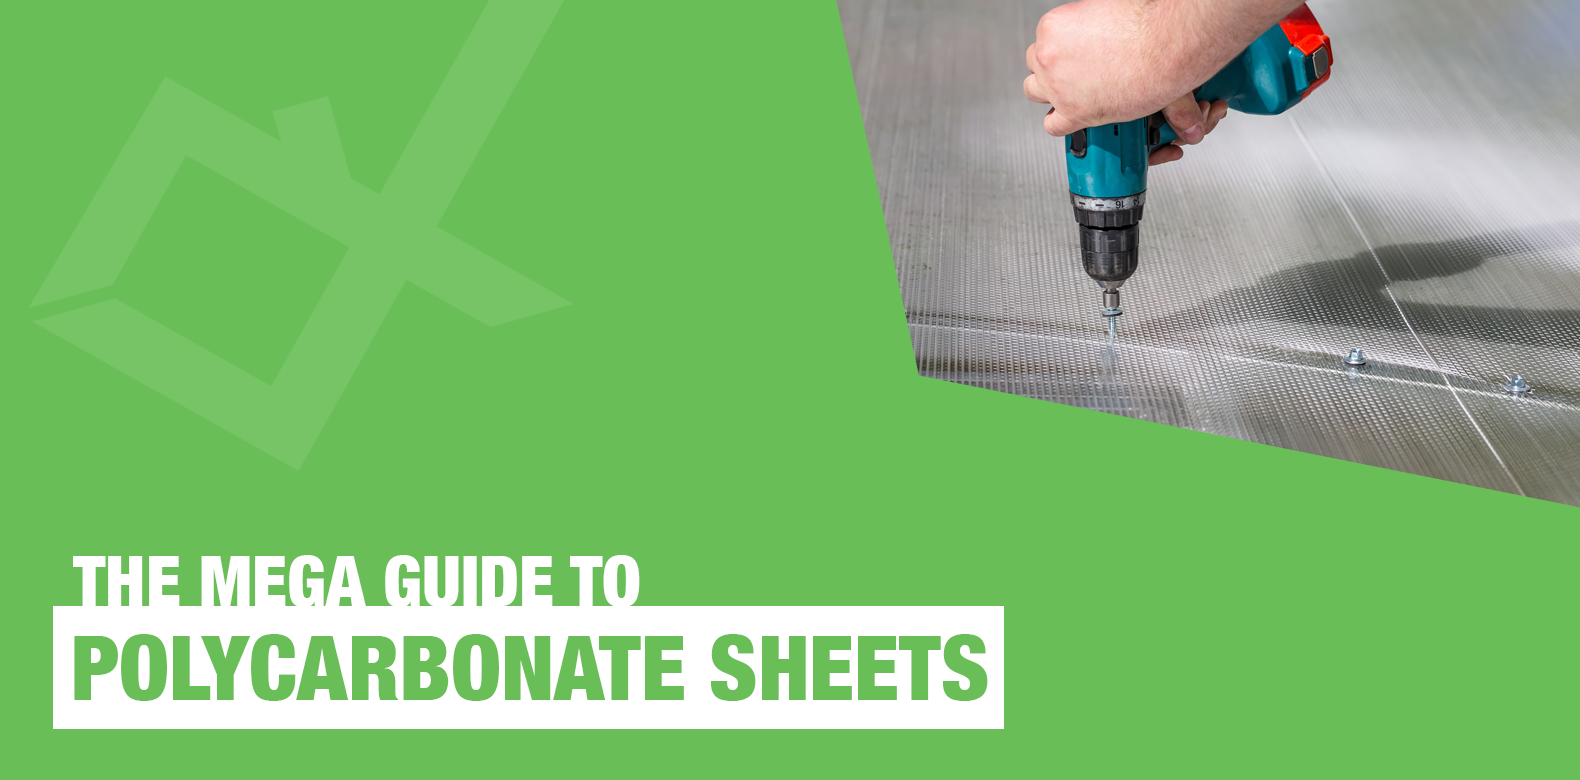 The Mega Guide to Polycarbonate